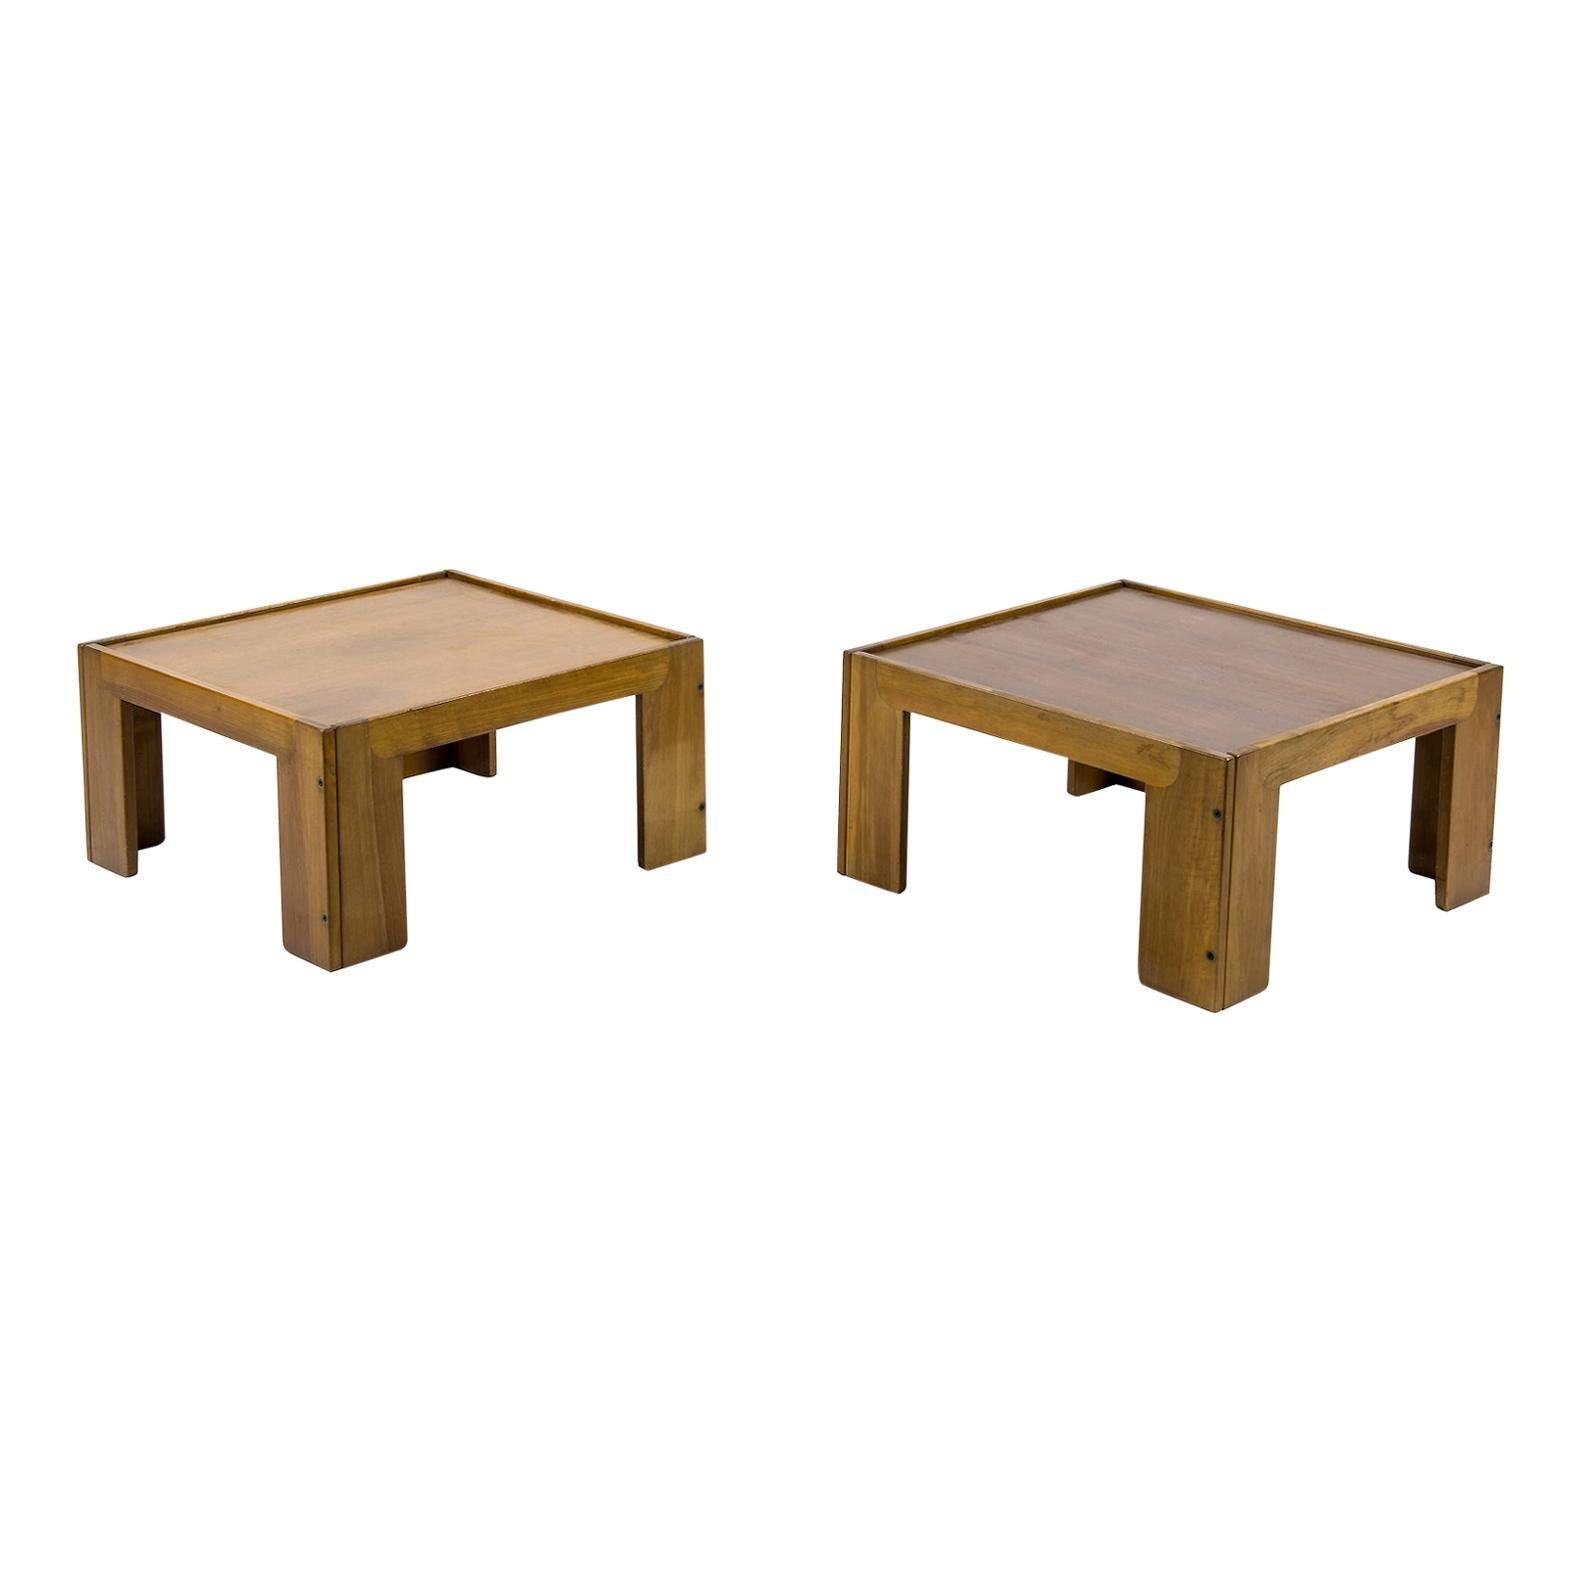 Afra & Tobia Scarpa, a Pair of Low Tables, Model 771, Cassina, 1960s